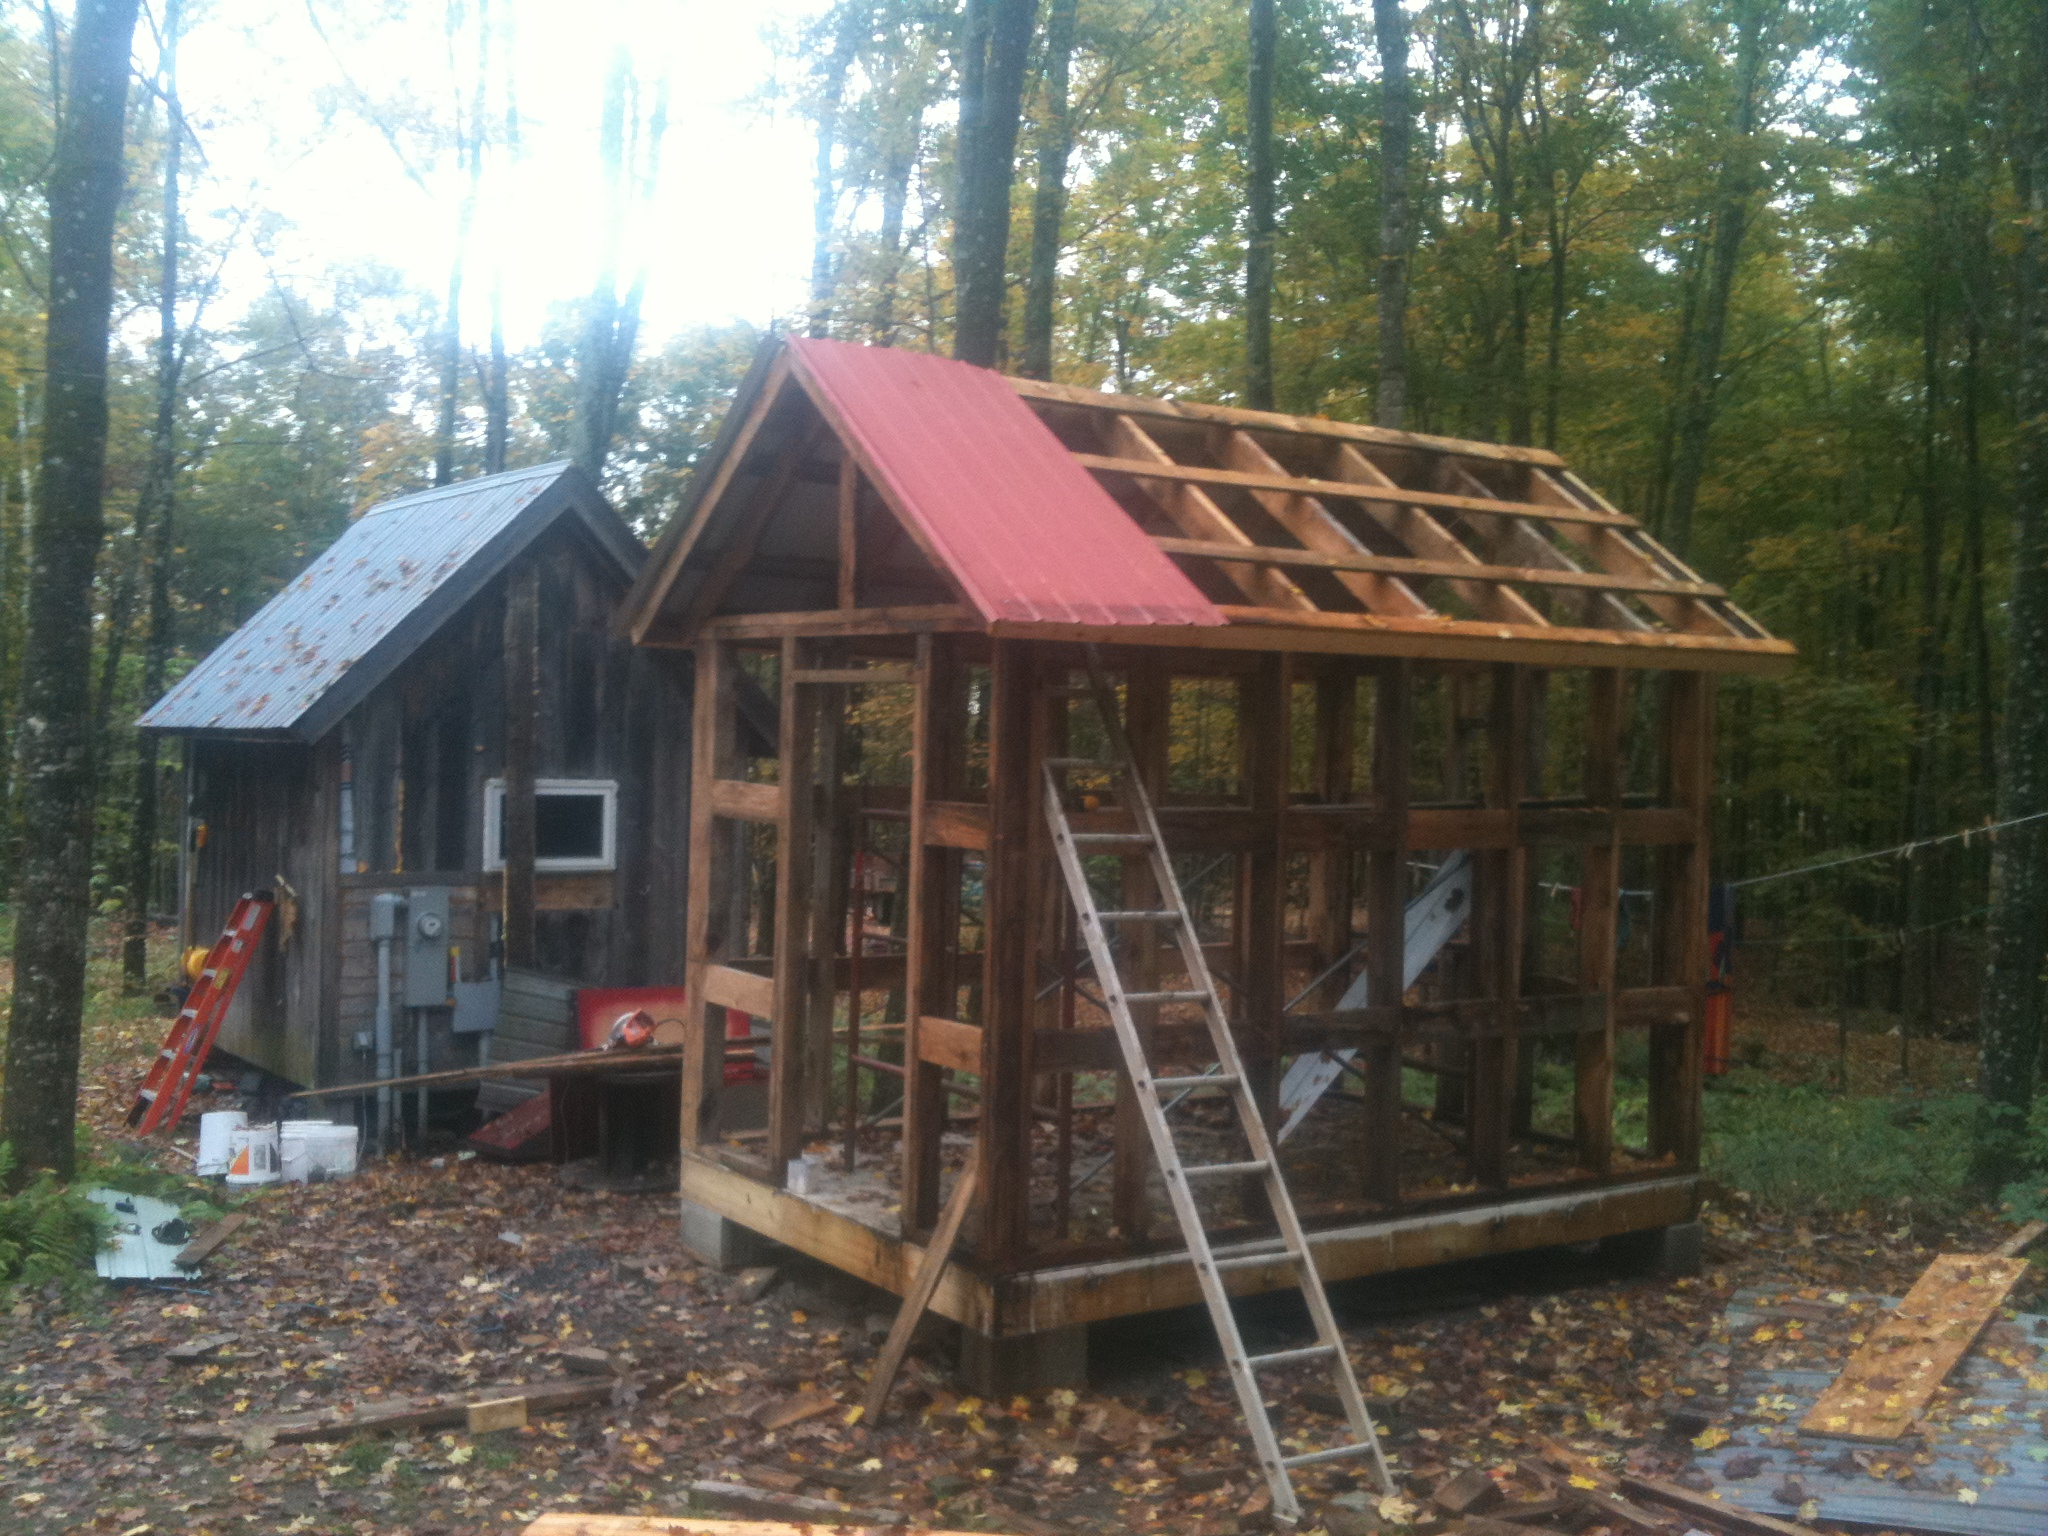 The next shed tiny house adventures for Shed roof tiny house